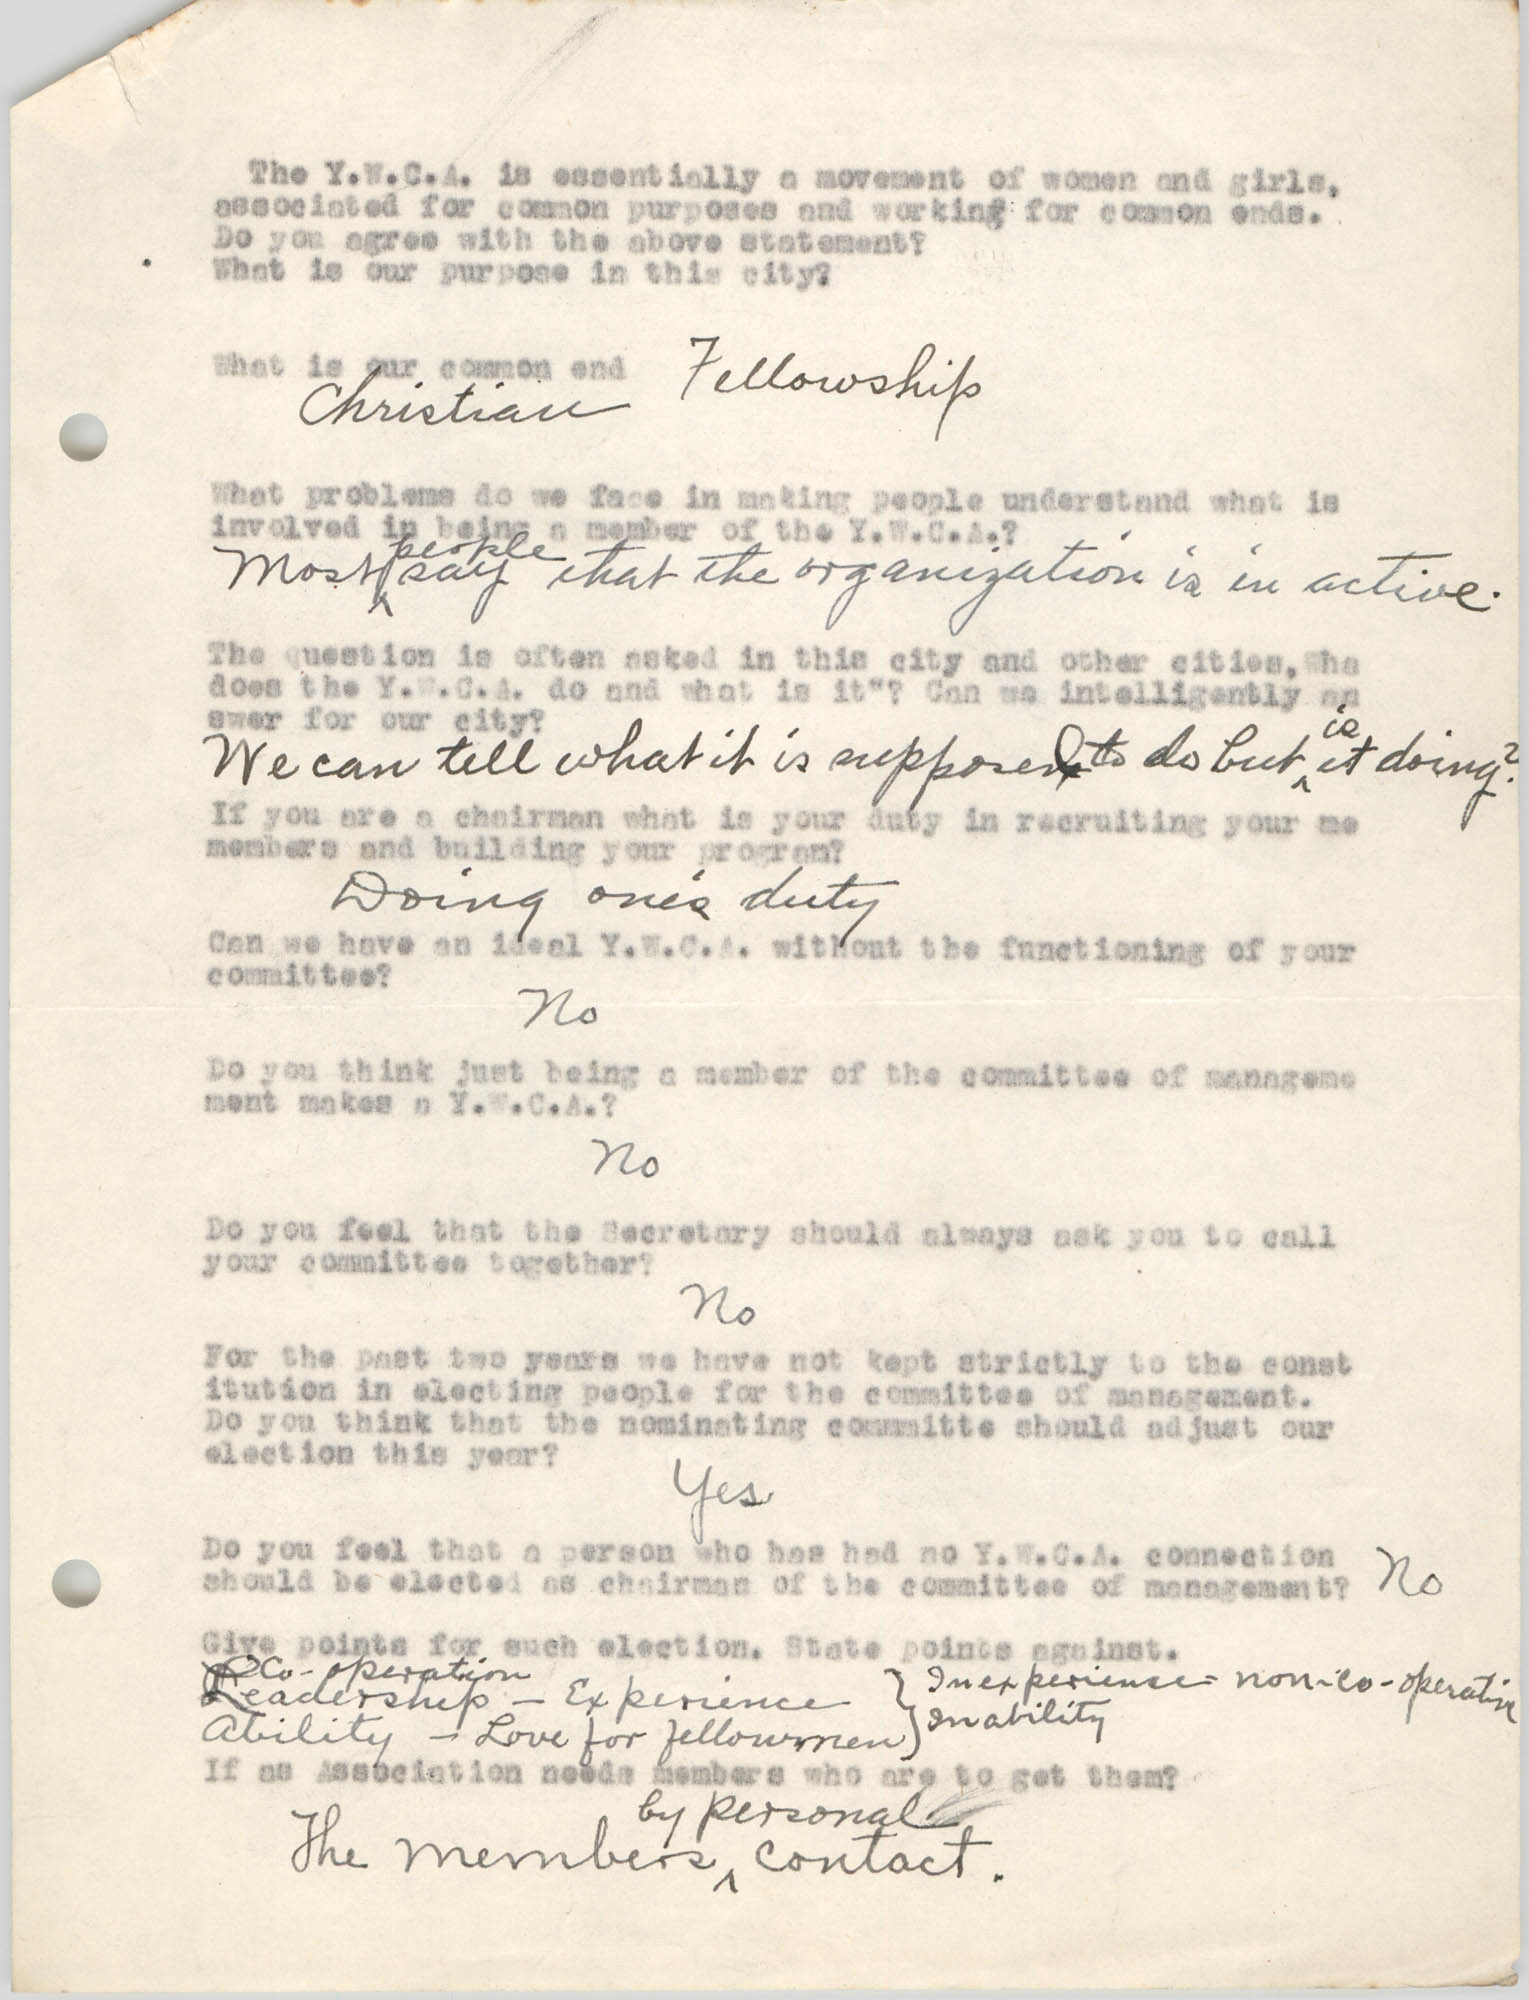 Coming Street Y.W.C.A., Completed Questionnaire Number 10, Page 1